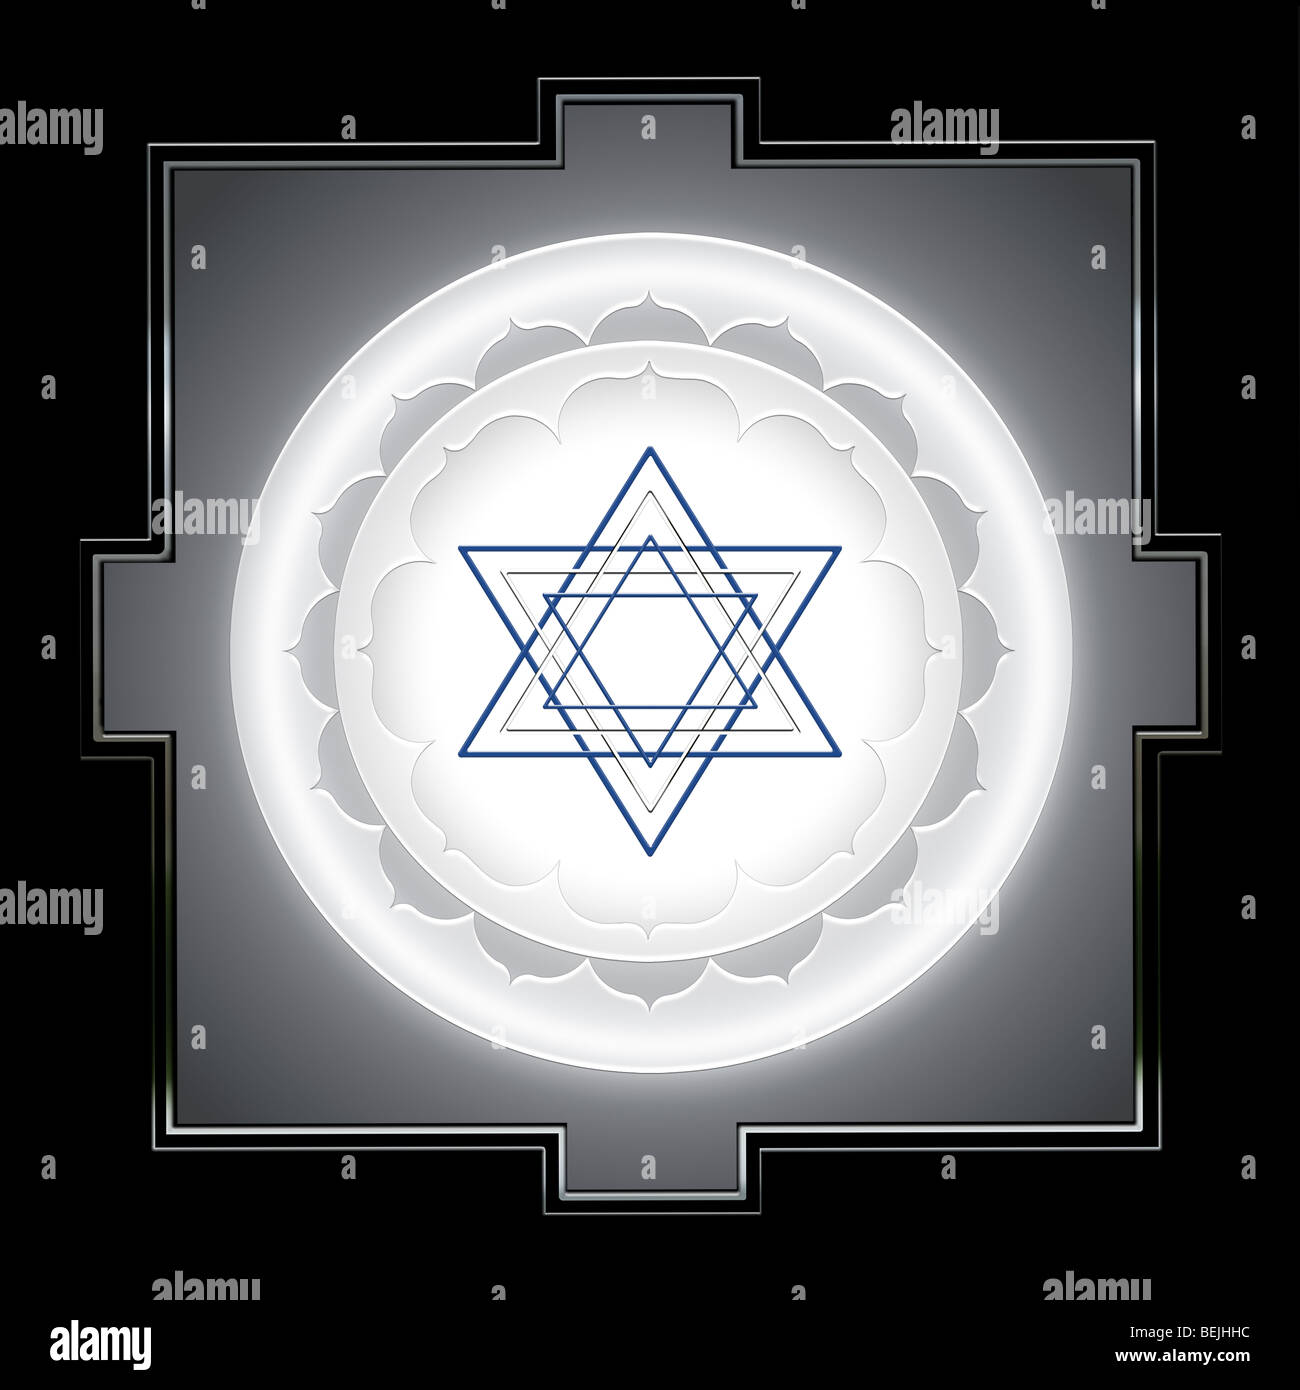 Illustration of an Indian Yantra symbol used in meditation - Stock Image